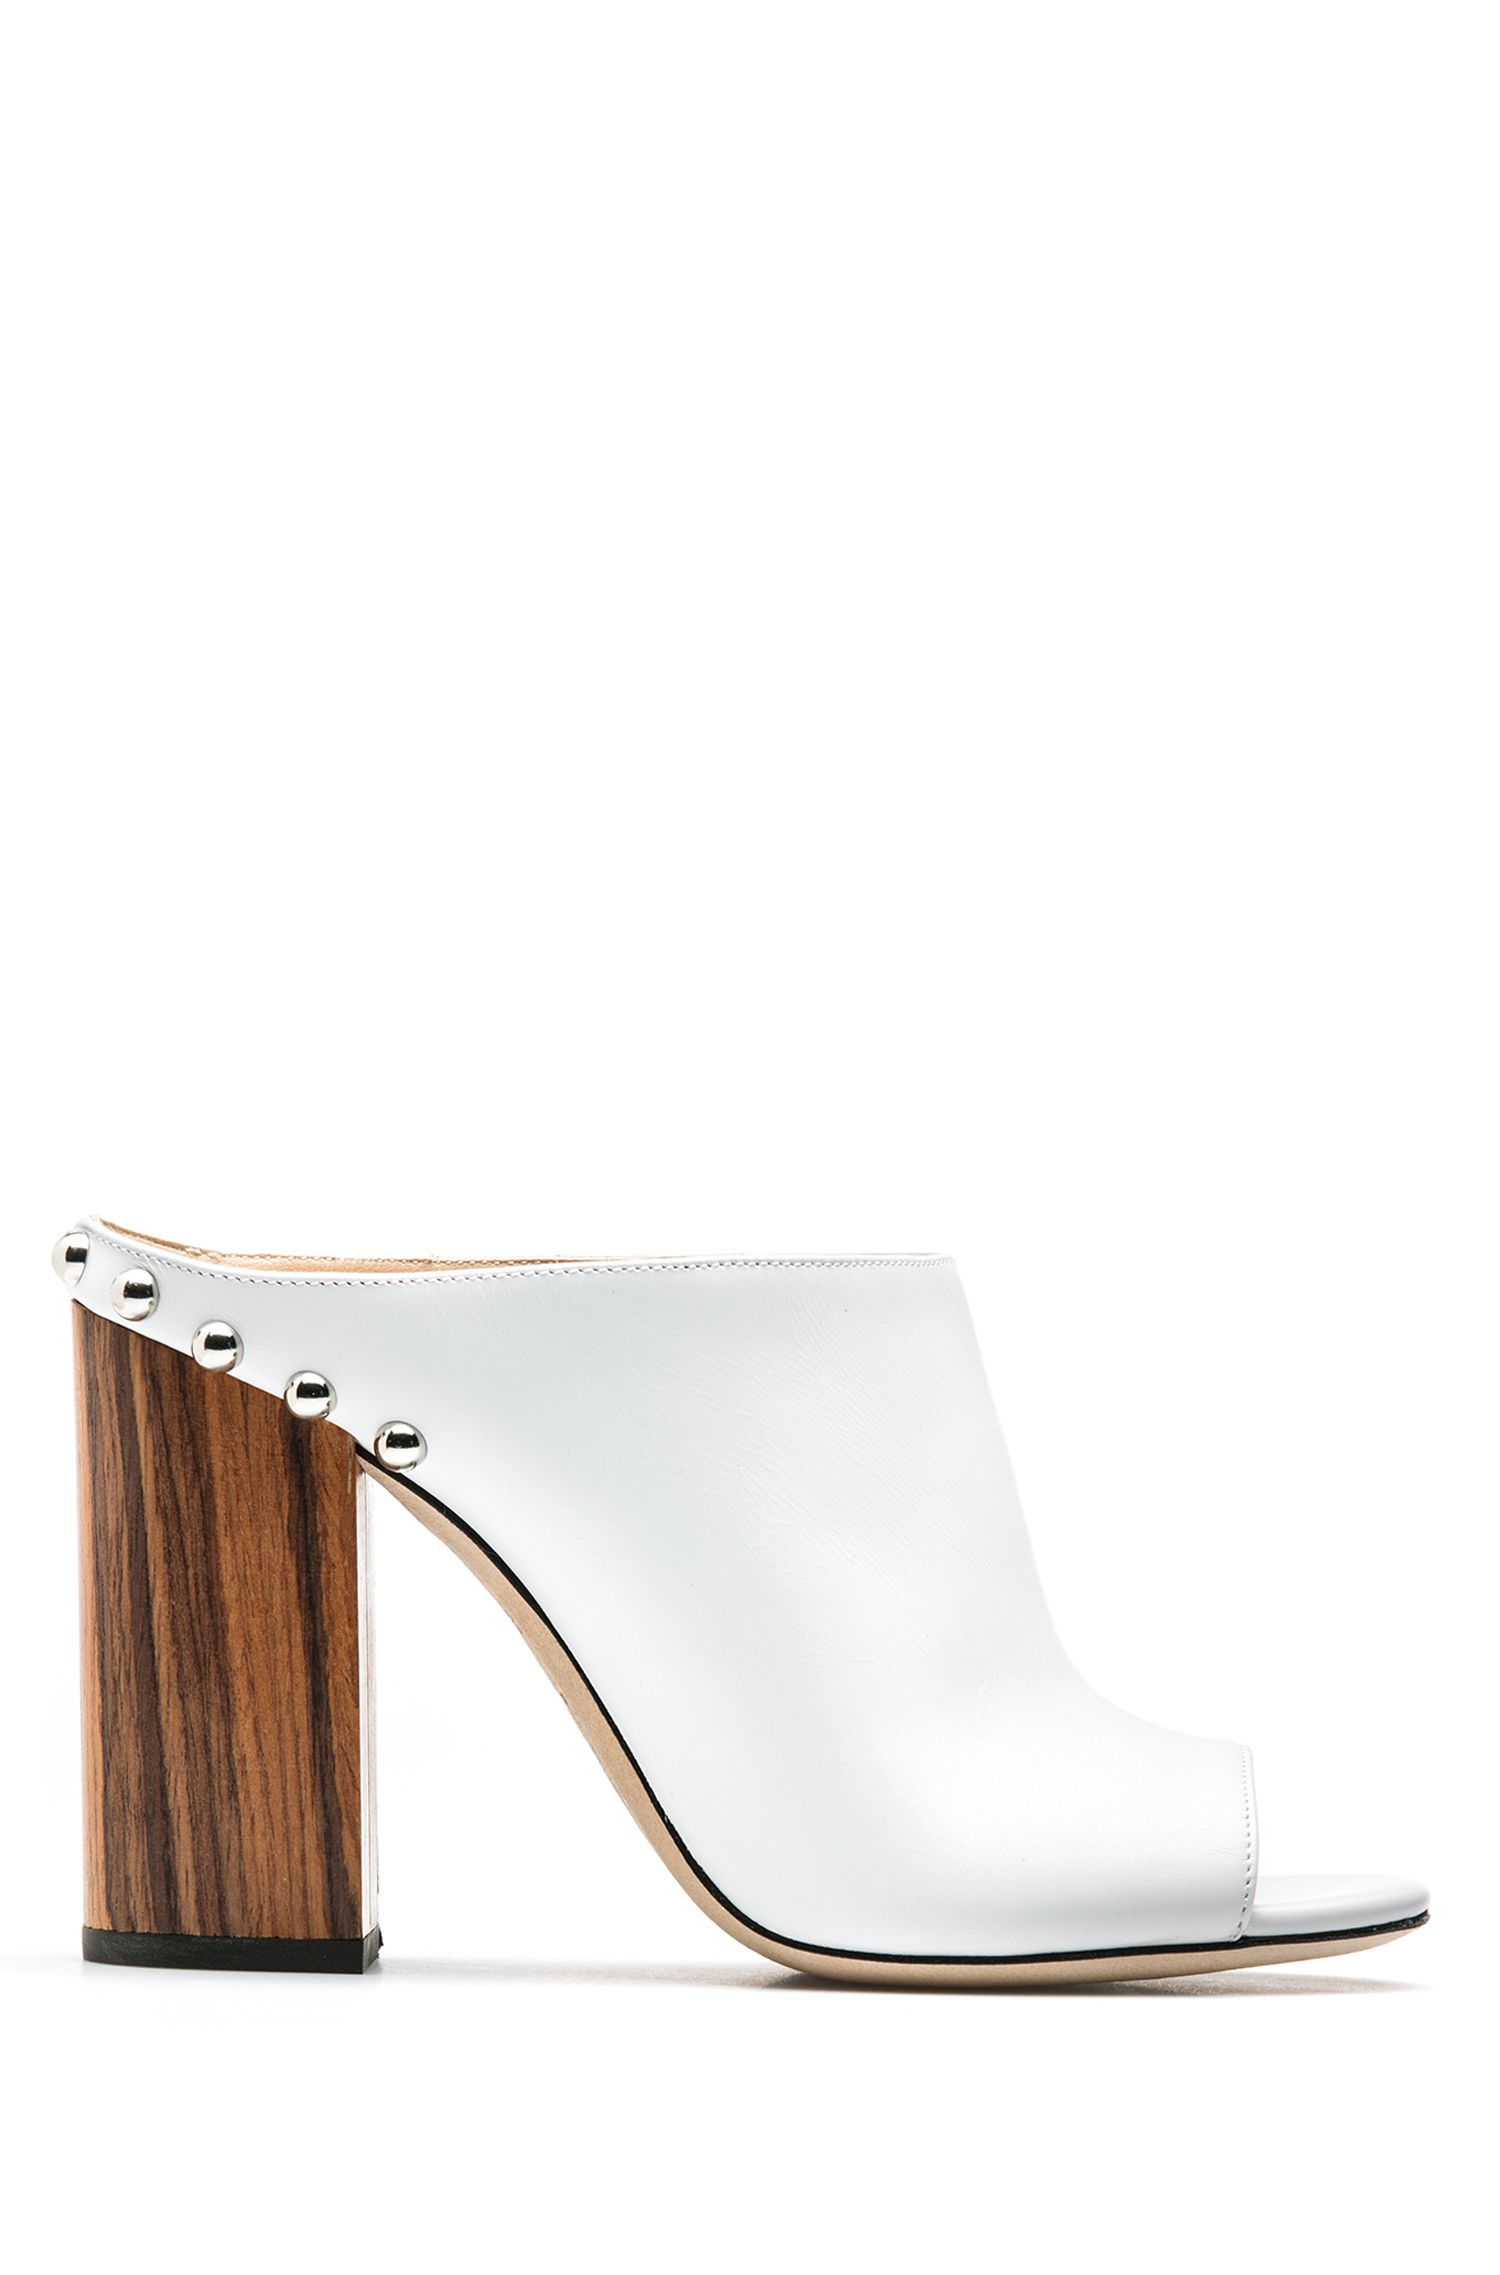 Leather open-toe mules with block heel